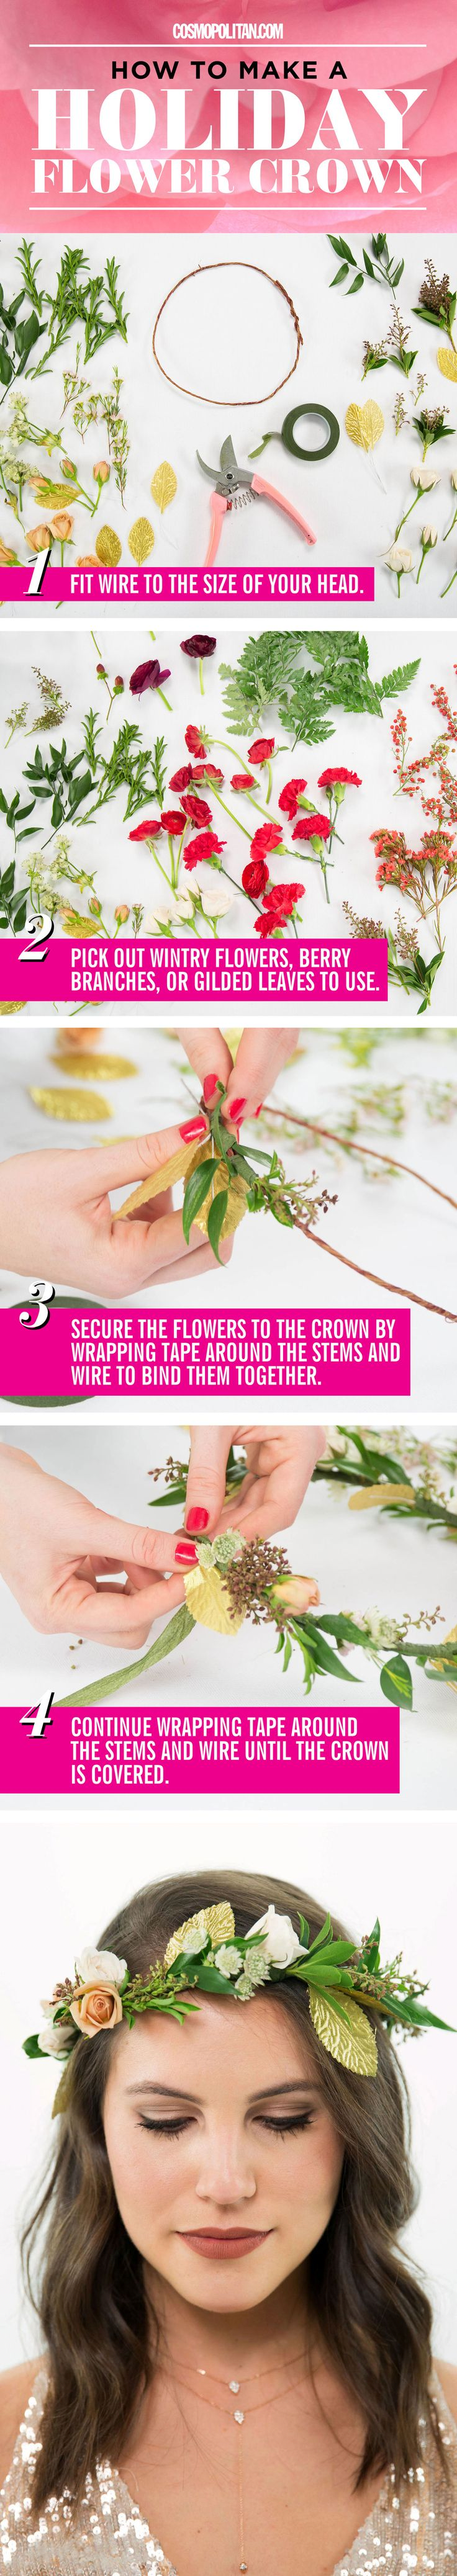 HOLIDAY FLOWER CROWN TUTORIAL: Make this ~wintry~ flower crown for holiday parties, New Year's Eve celebrations, or for any other occasion — this DIY crown works year round. Here, flower crown designer Christy Doramus of Crowns by Christy shows you how to make this festive flower crown with 3 supplies: moldable wire, floral tape, and wintry flowers, berry branches, and gilded leaves. Find the easy flower crown tutorial here!